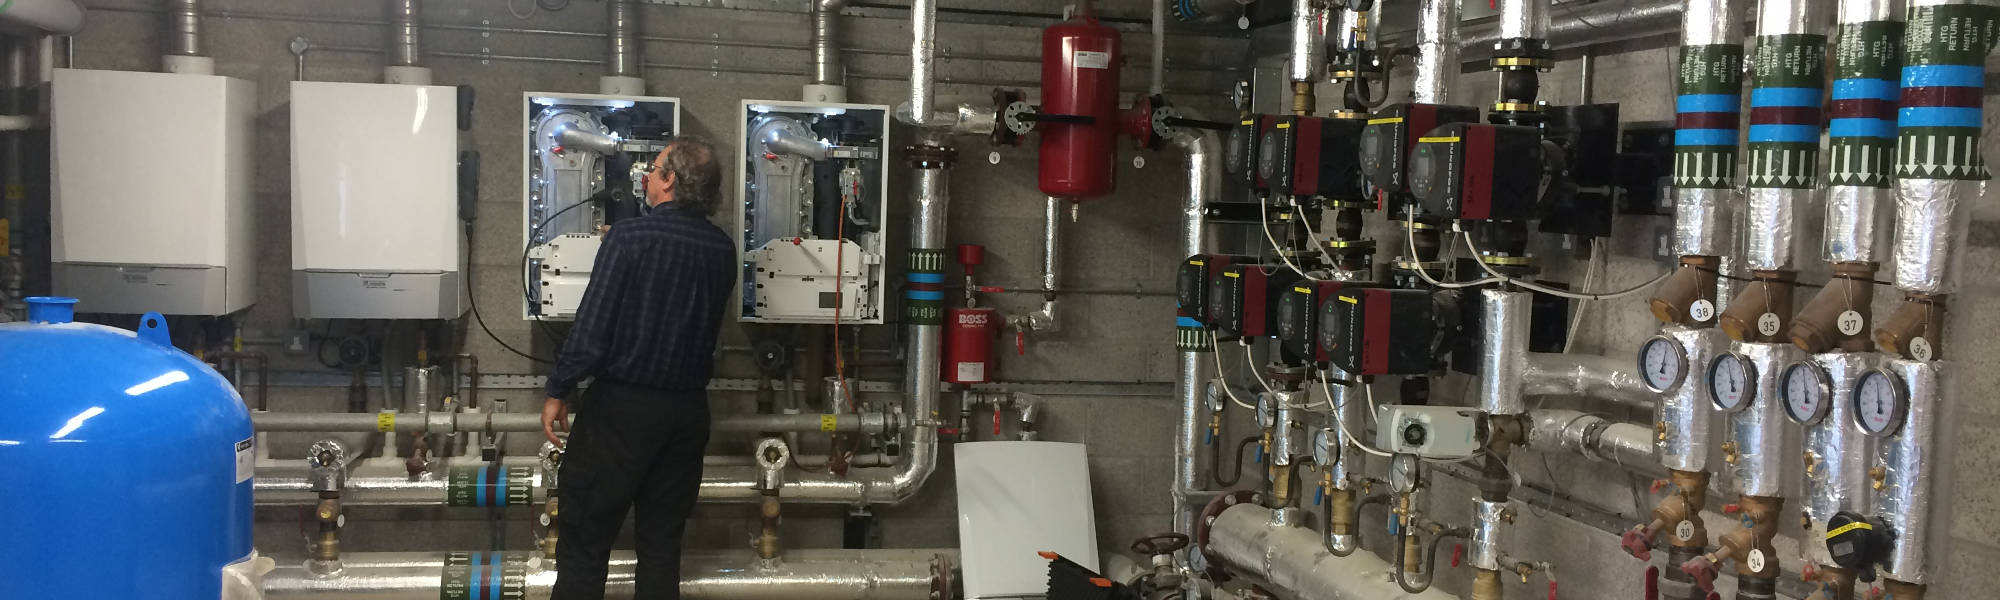 Sound Heating Commercial Boiler Servicing - Plant Room Photo